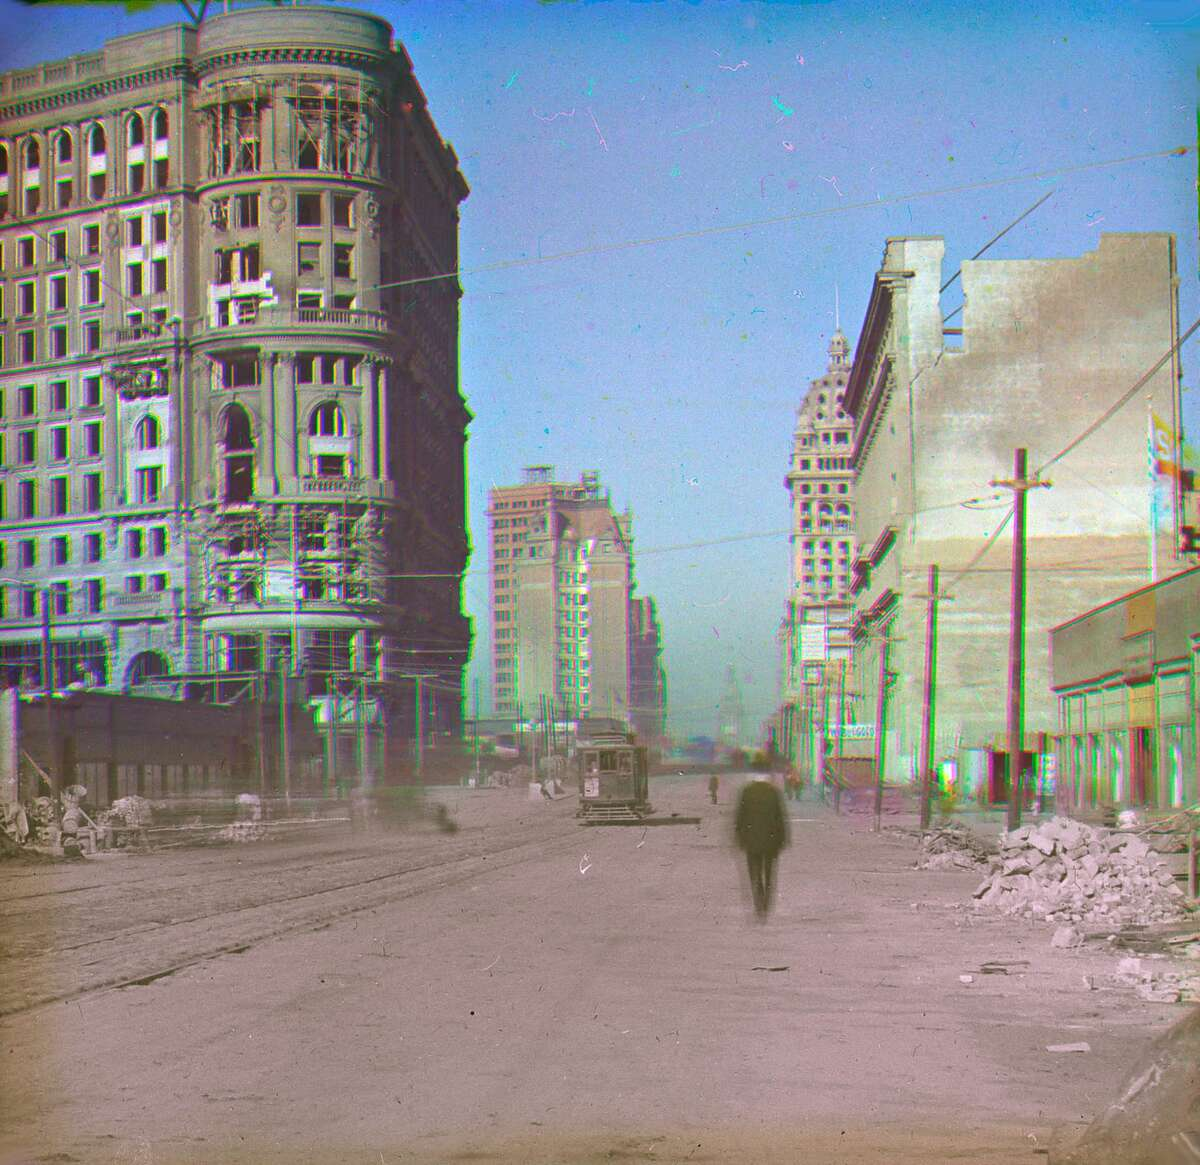 In this image by photo pioneer Frederick Ives, color illuminates scenes only ever before seen in black and white, and the effect of the quake and subsequent fire is clear. The shot shows a green street car on Market Street and the scarred walls of the Flood Building, which still stands at Powell and Market streets today.